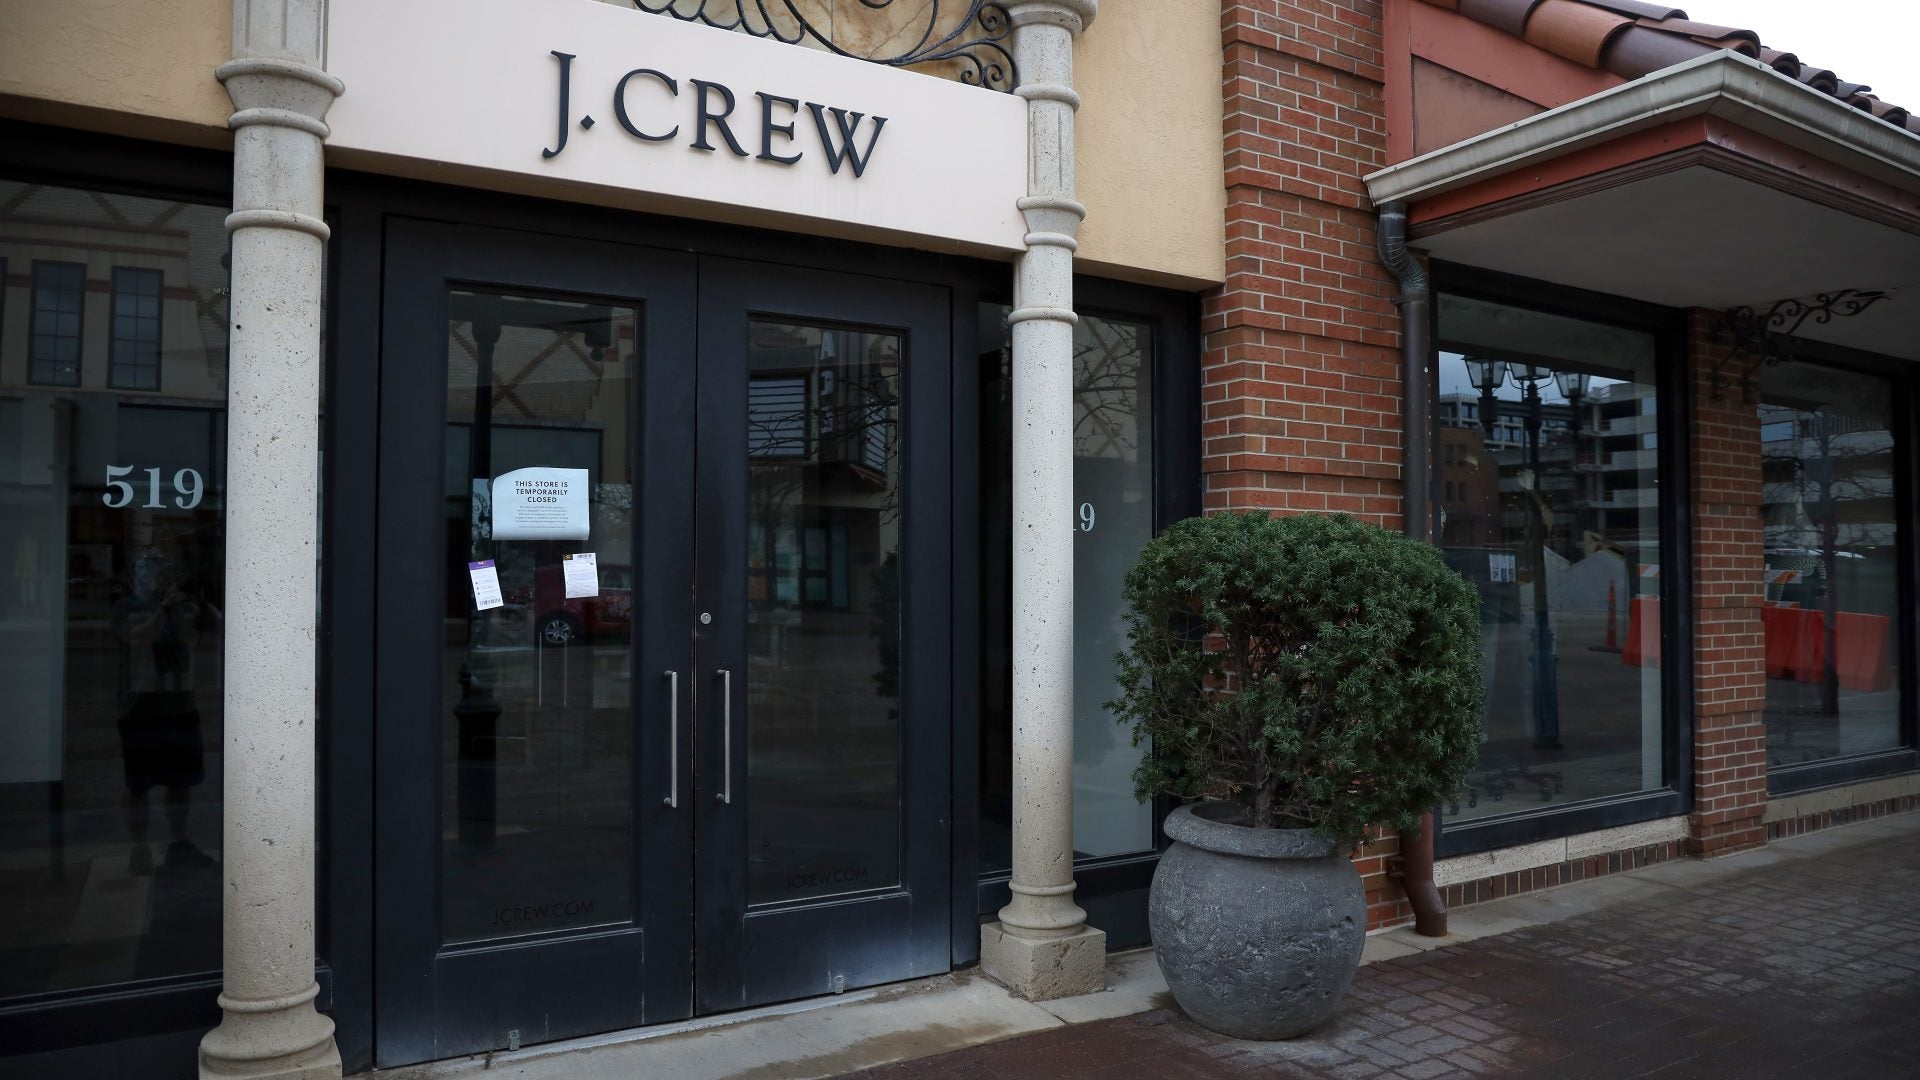 J.Crew Files For Bankruptcy, Becoming The First Major Retailer To Fall Amid The Pandemic